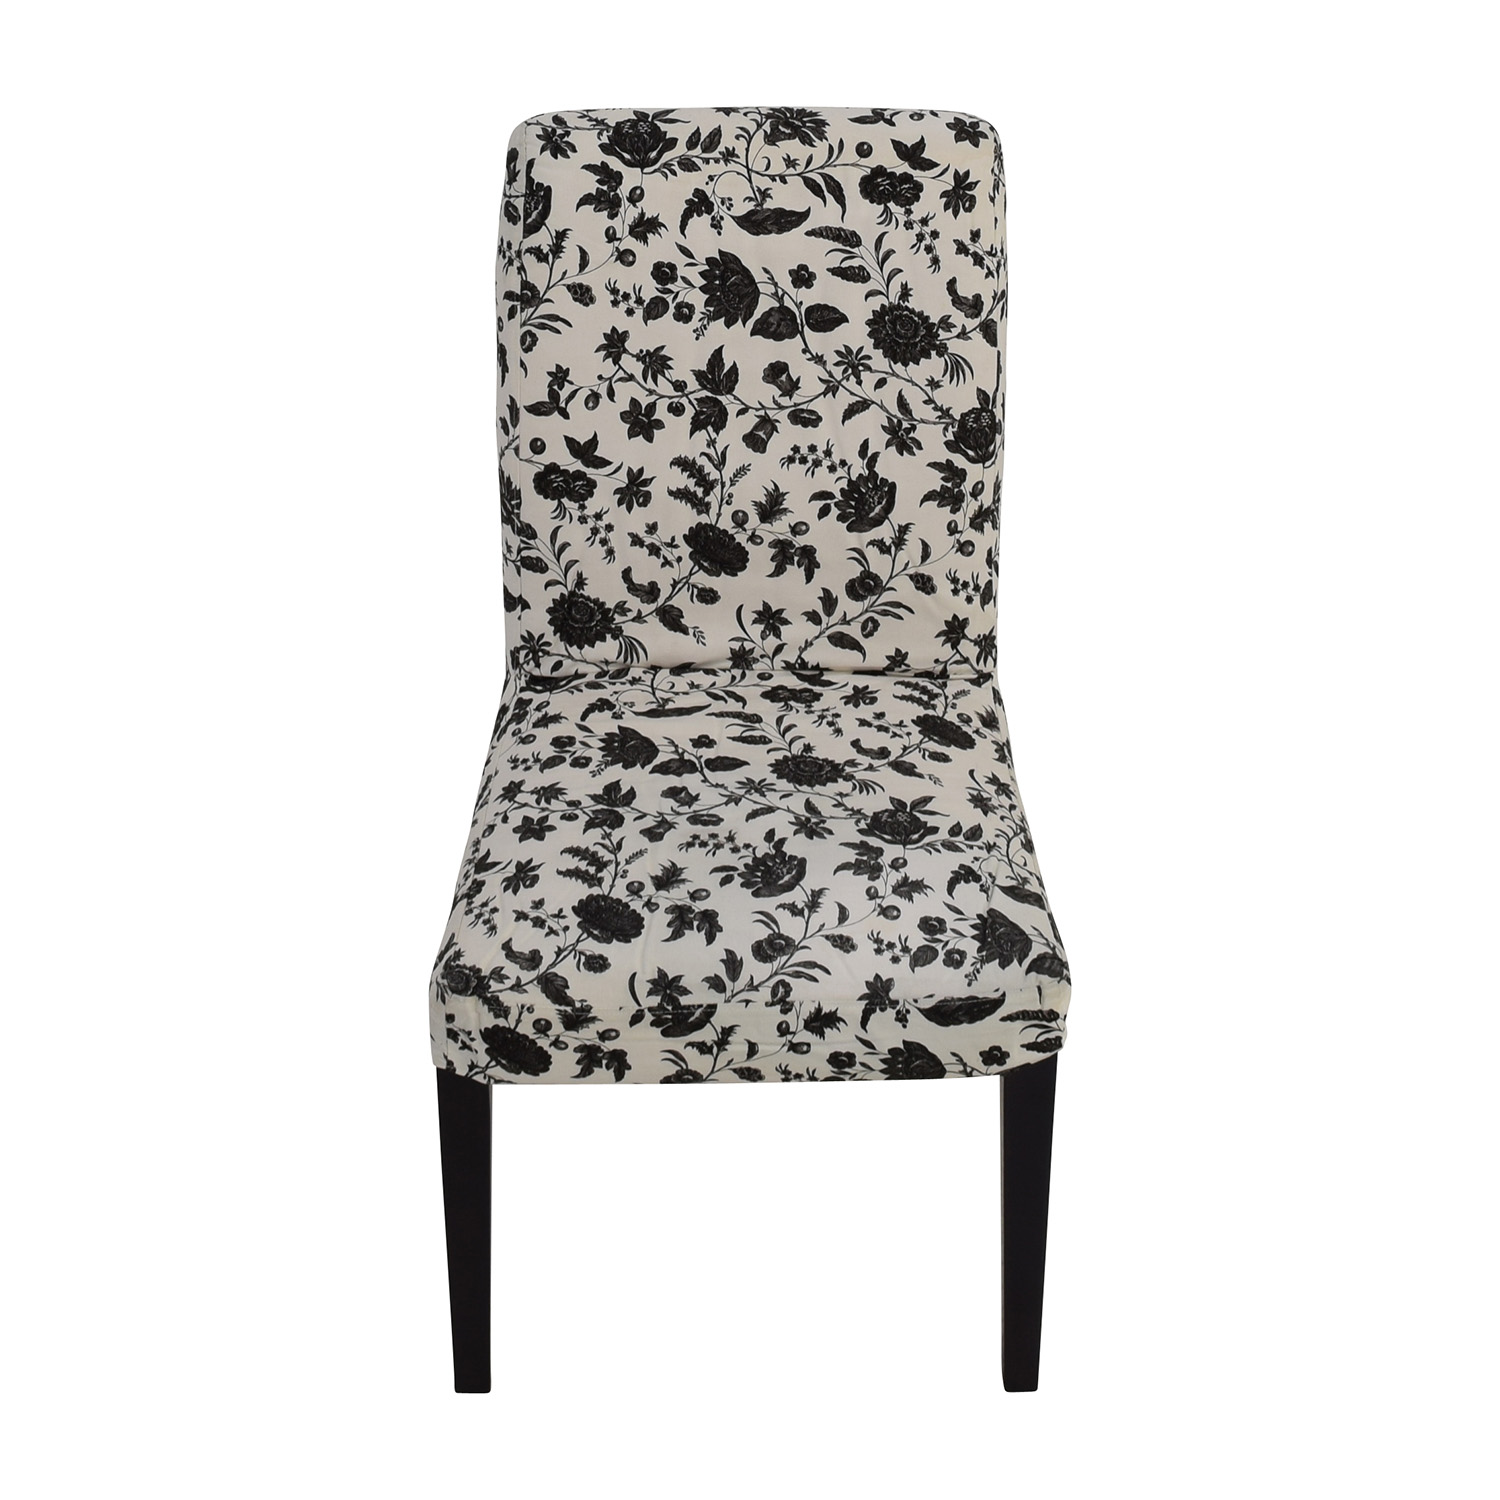 black white dining chair cost plus chairs rooms to go second hand on a budget